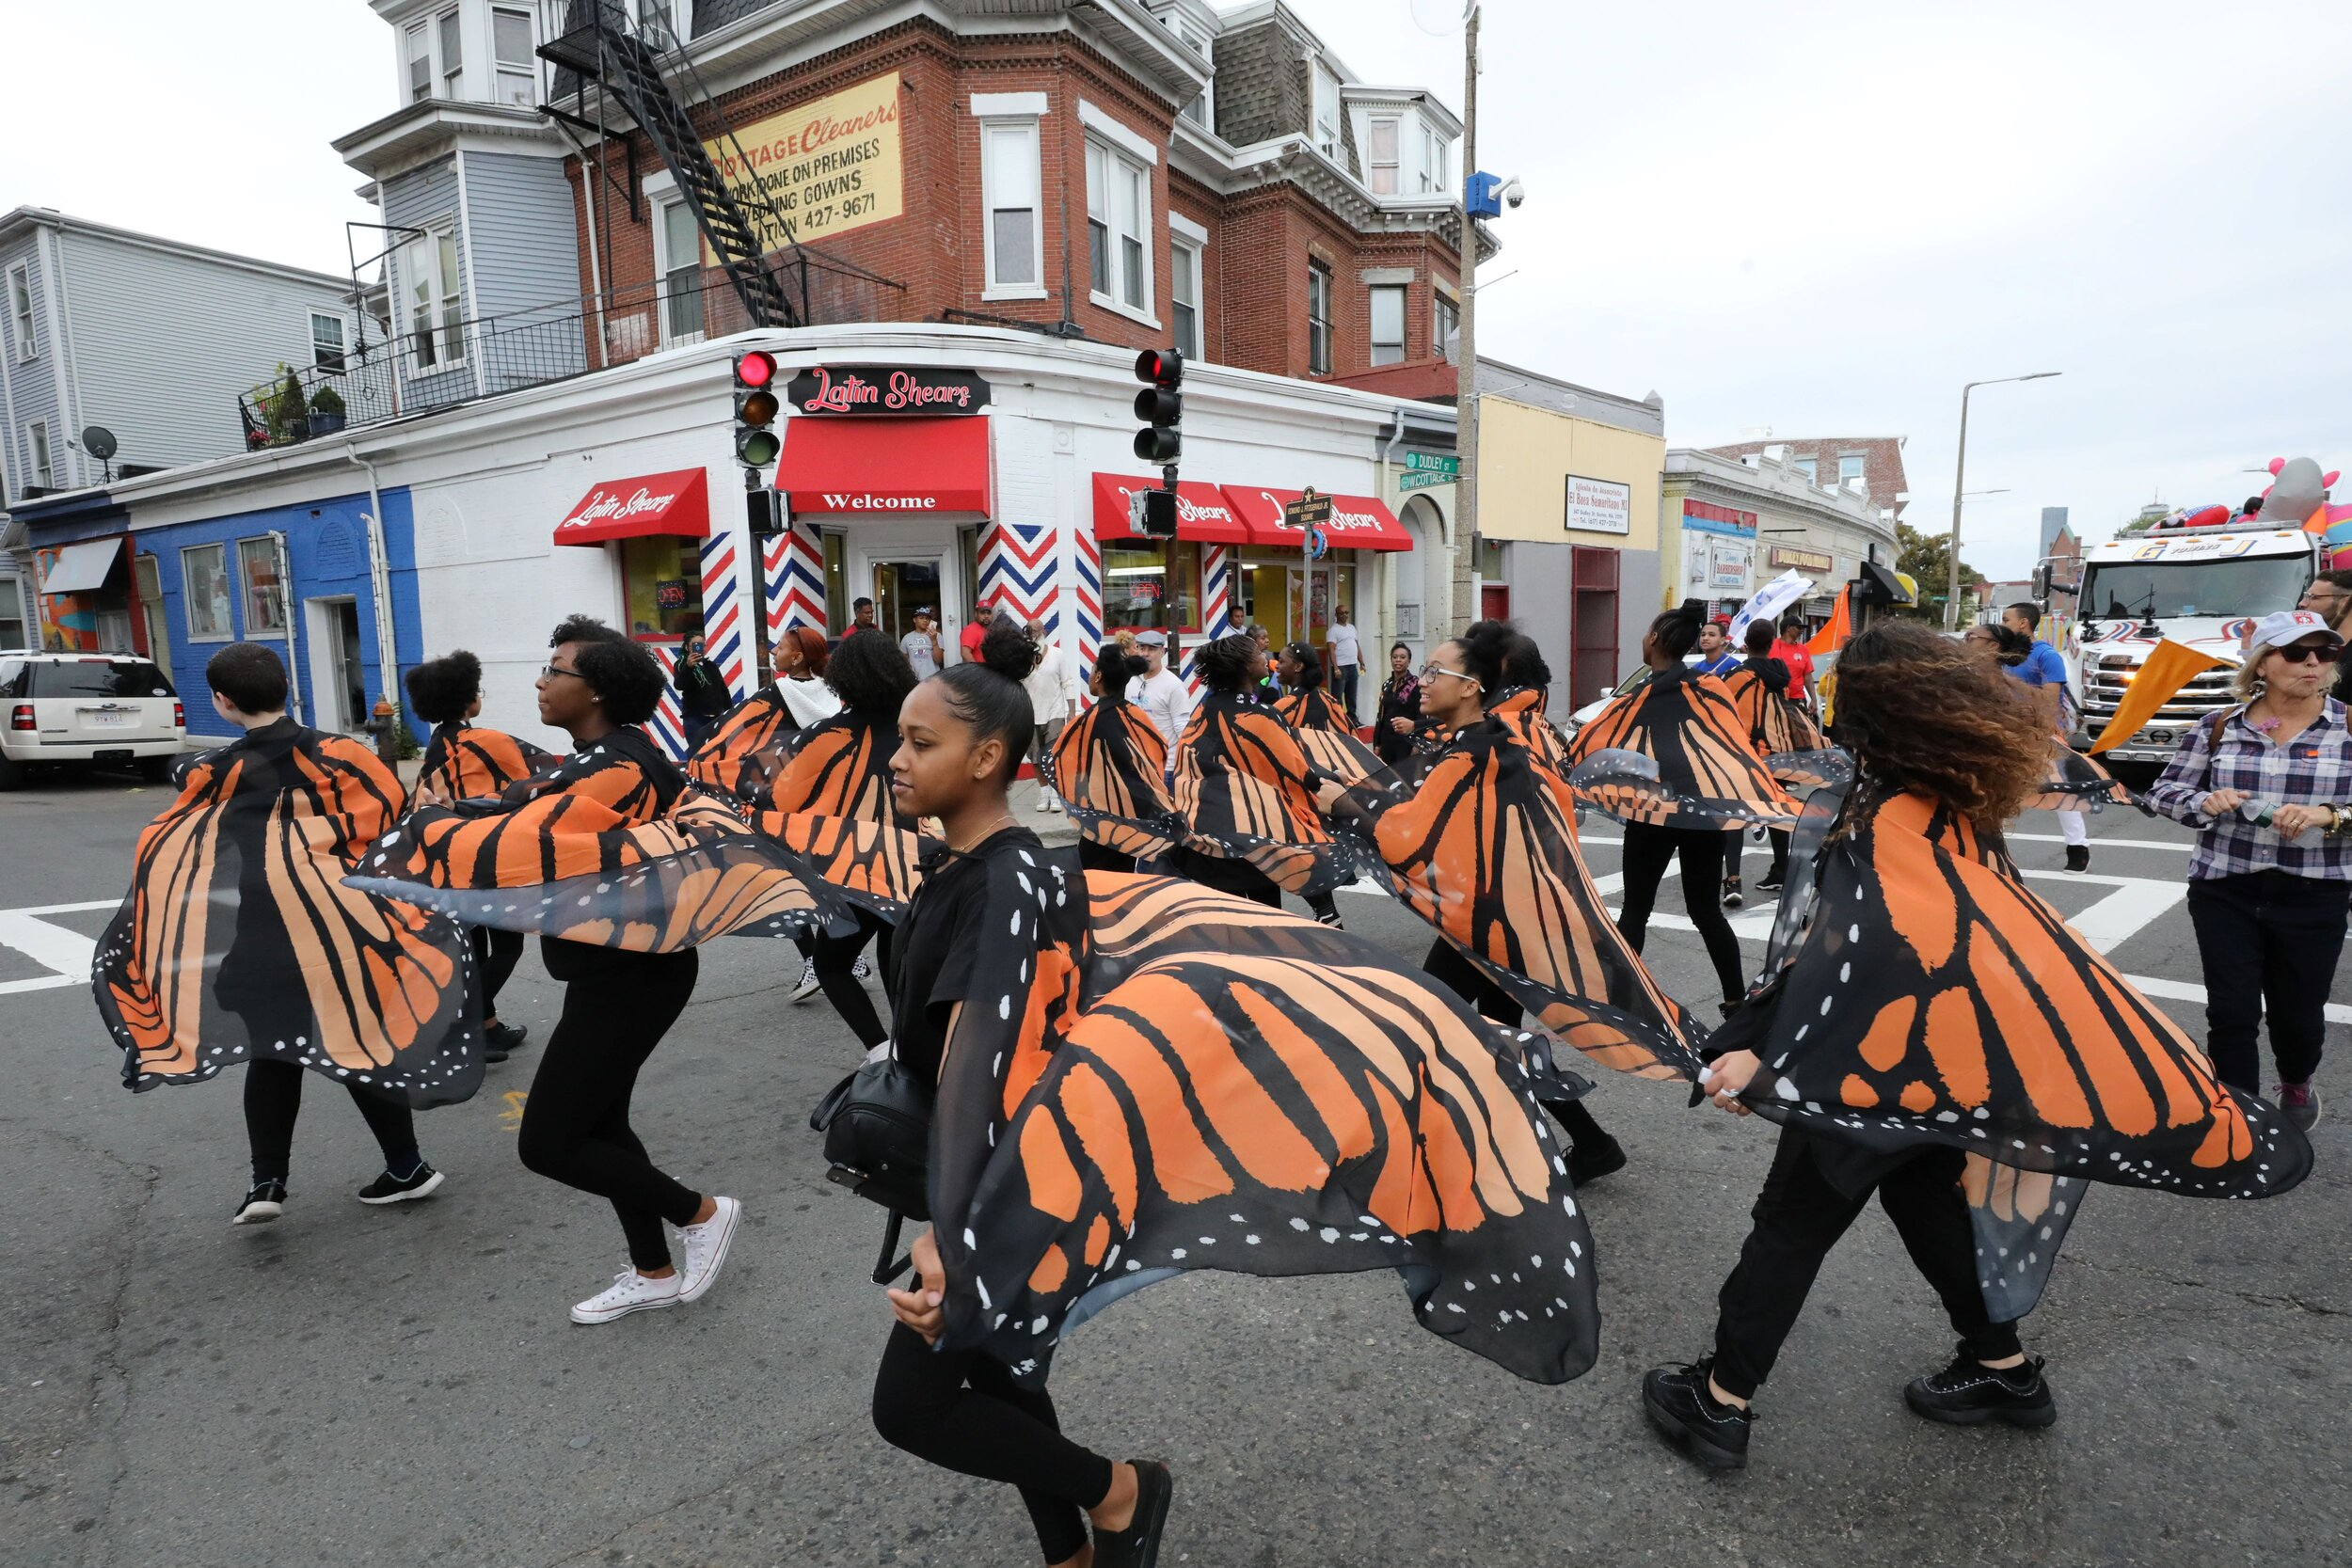 Butterfly Dancers from Boston Arts Academy dance through Dudley Square. Photo by Dominic Chavez